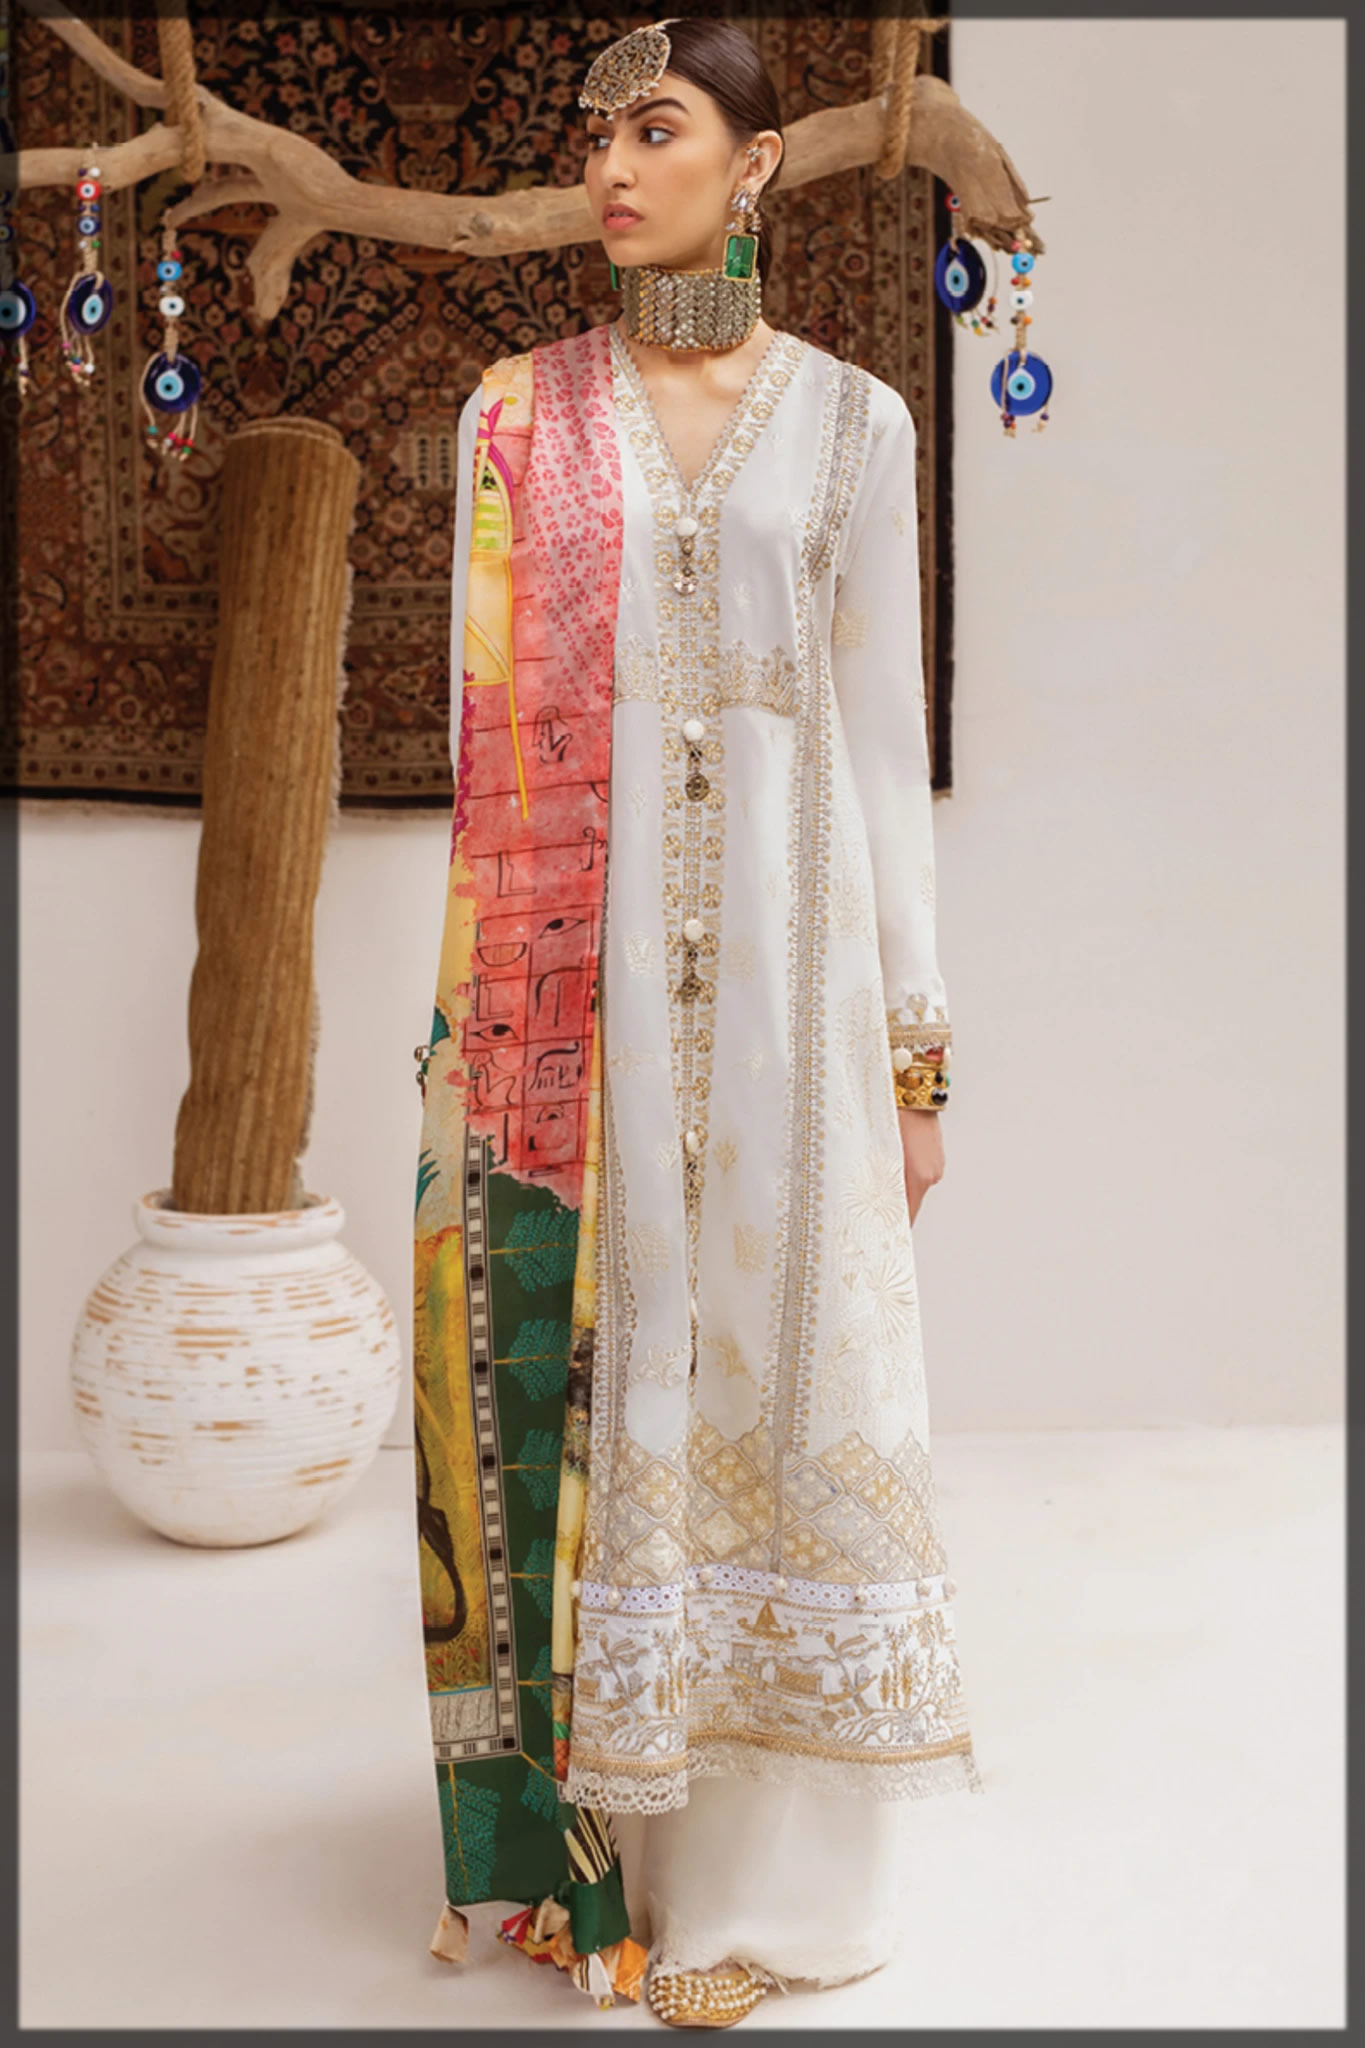 royal elegant white embroidered suit